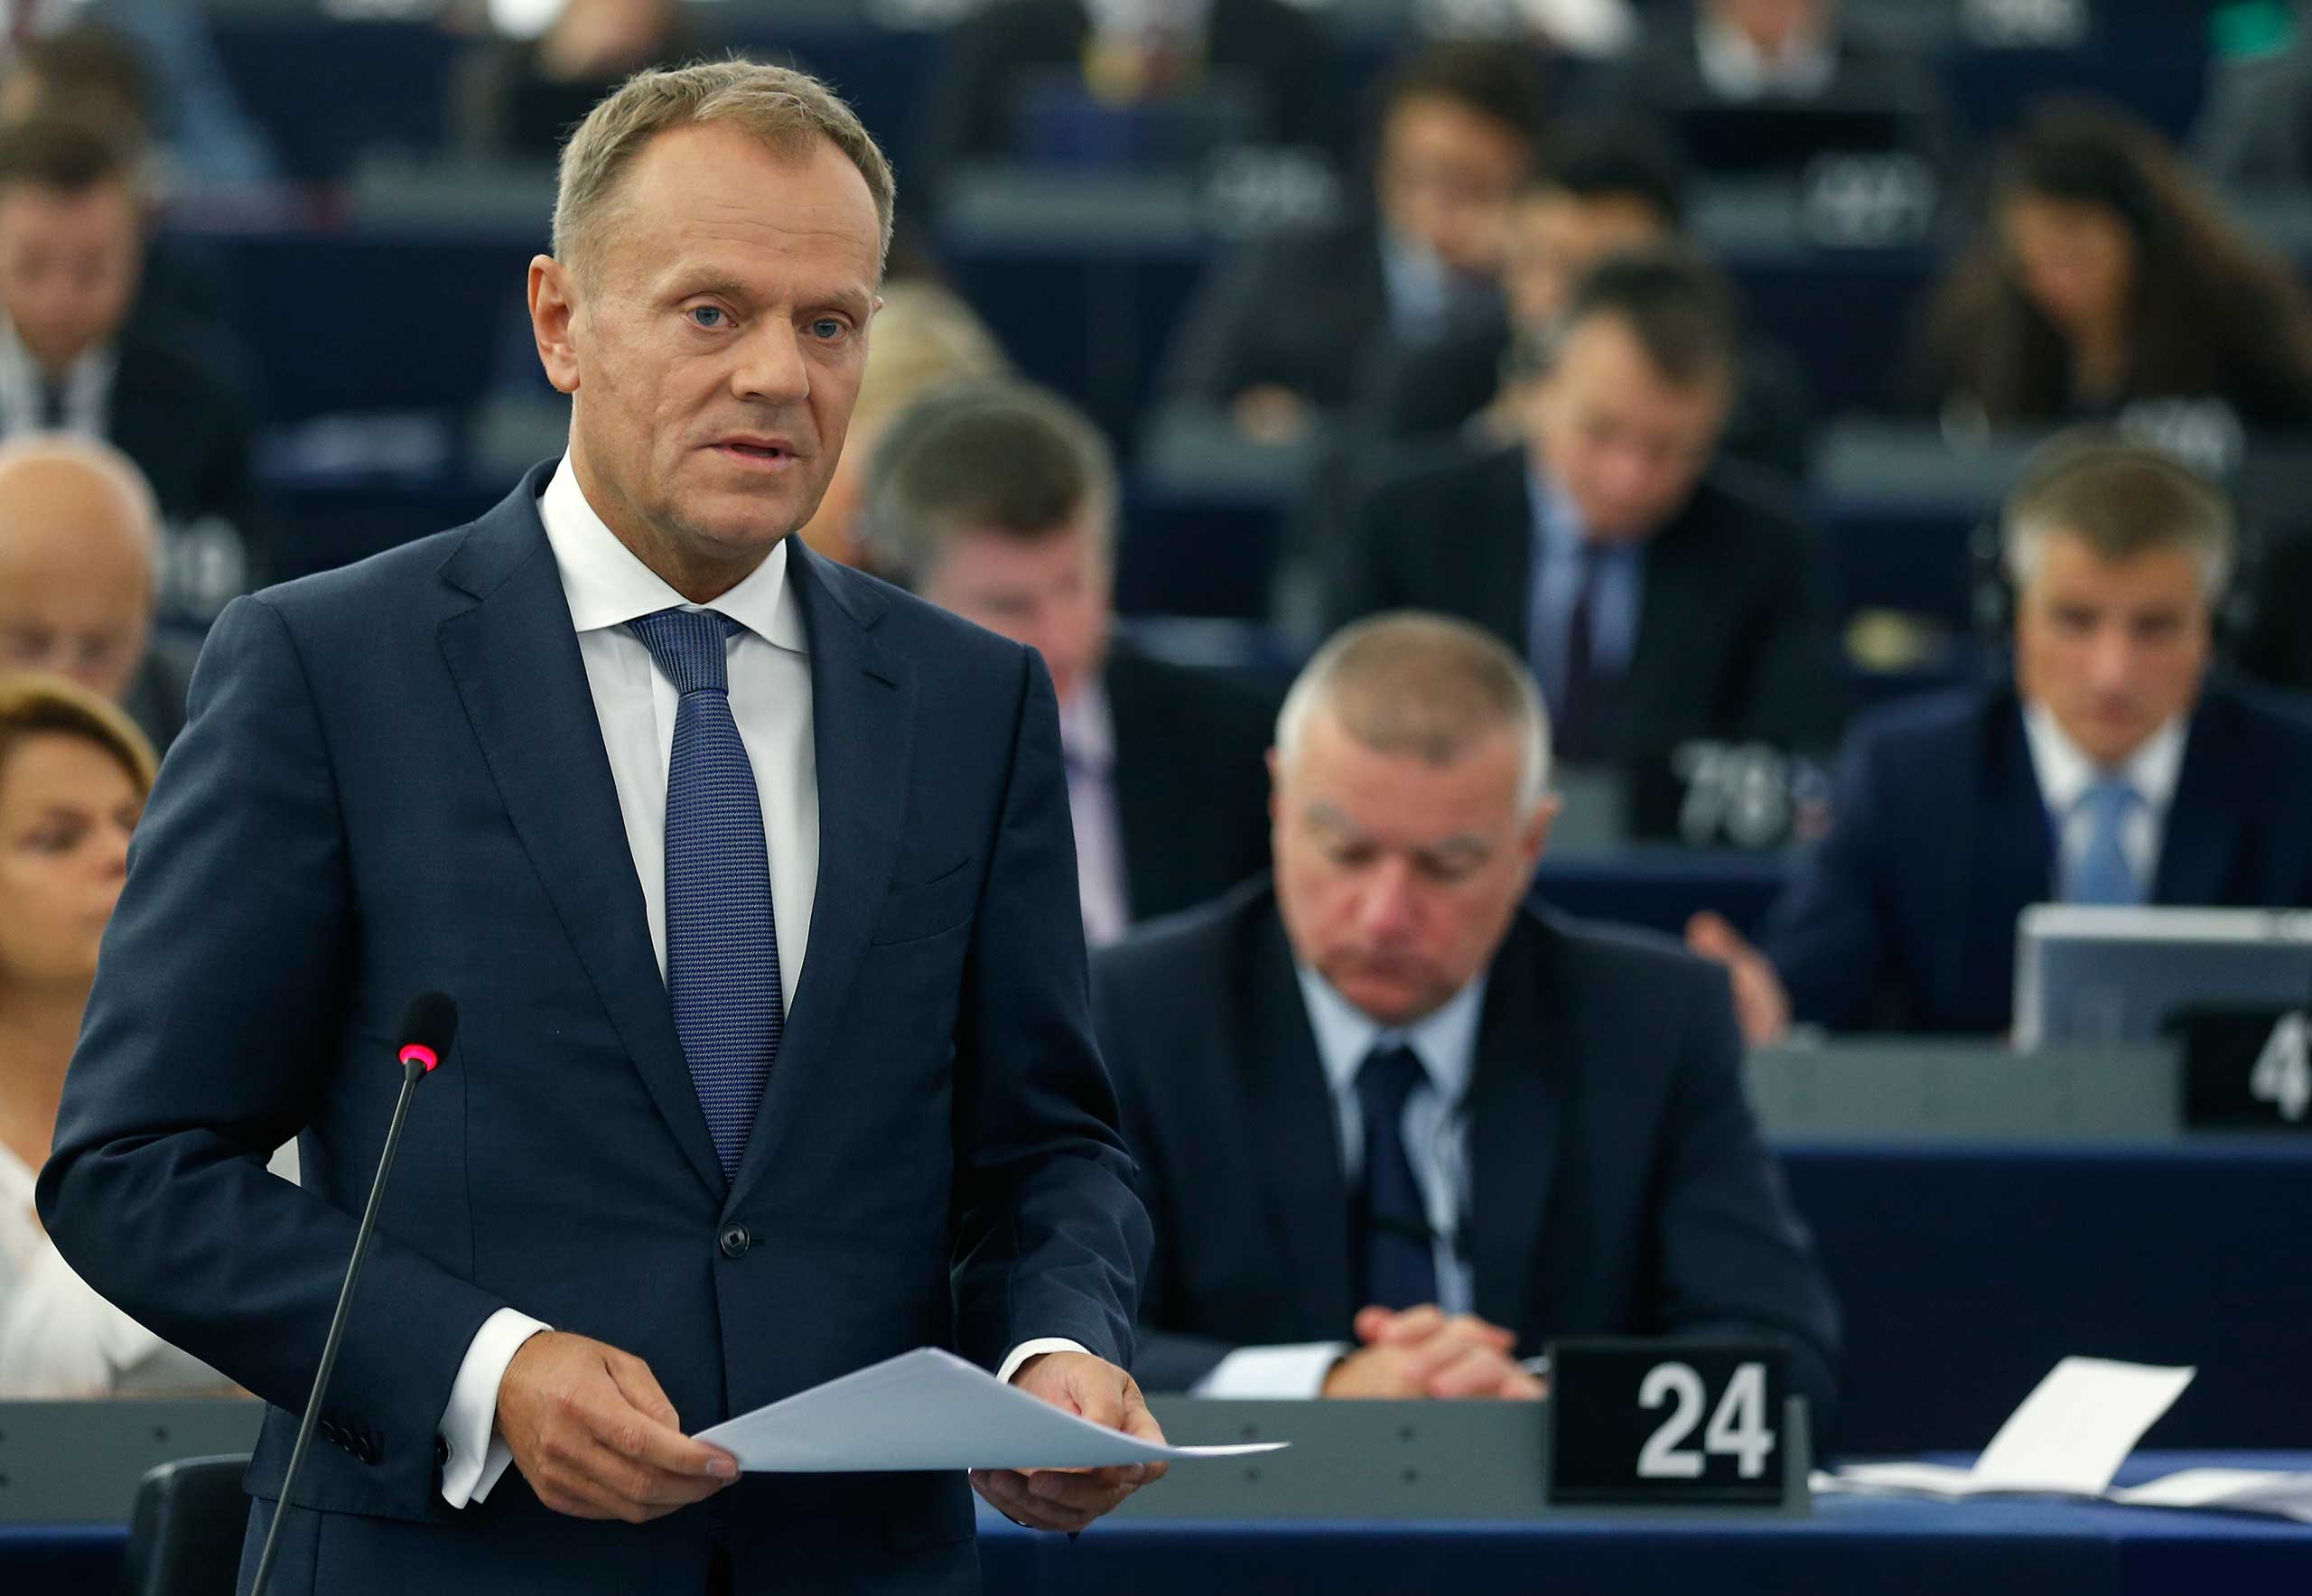 European Council President Donald Tusk addresses the European Parliament during a debate on the results of the last informal European Council, in Strasbourg, France, Oct. 6, 2015.